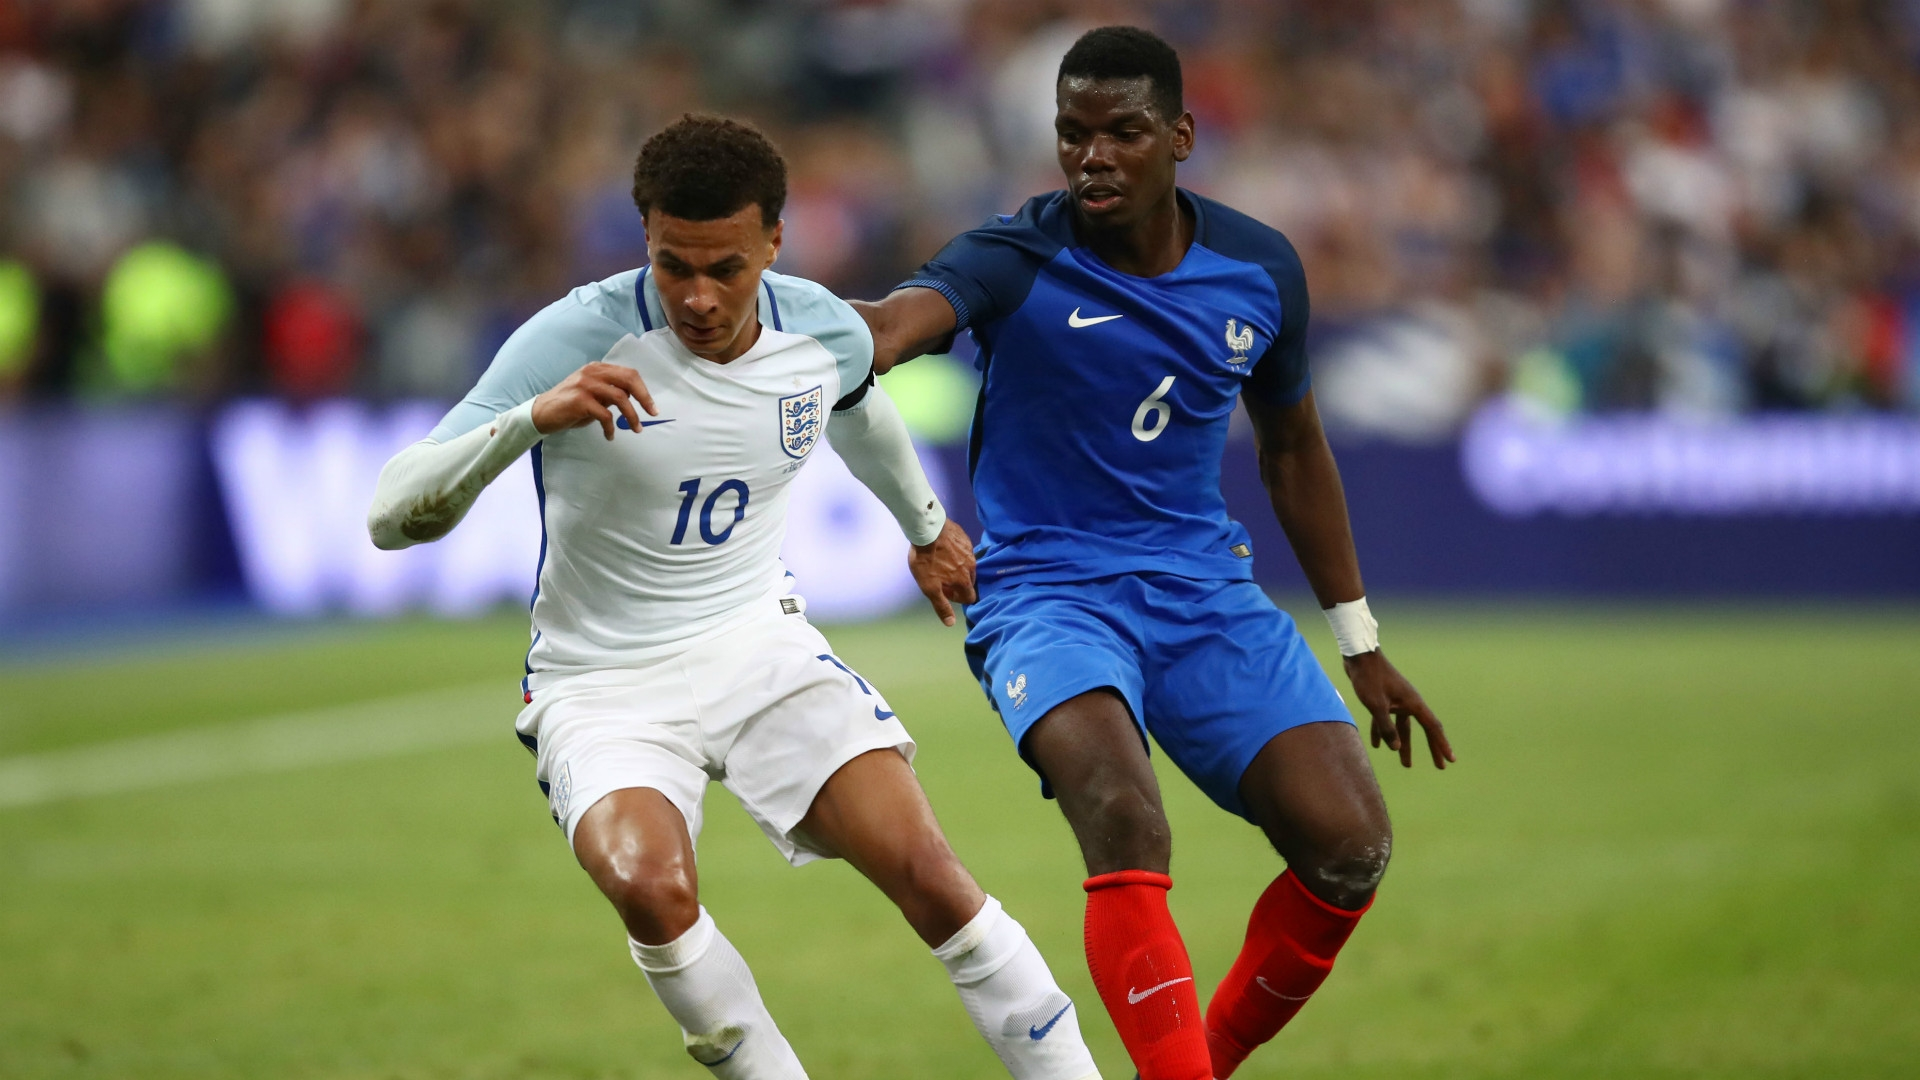 Pogba believes the team has the strength to ensure they earn three points and urges his teammates to show bravery in the vital game against Sweden.